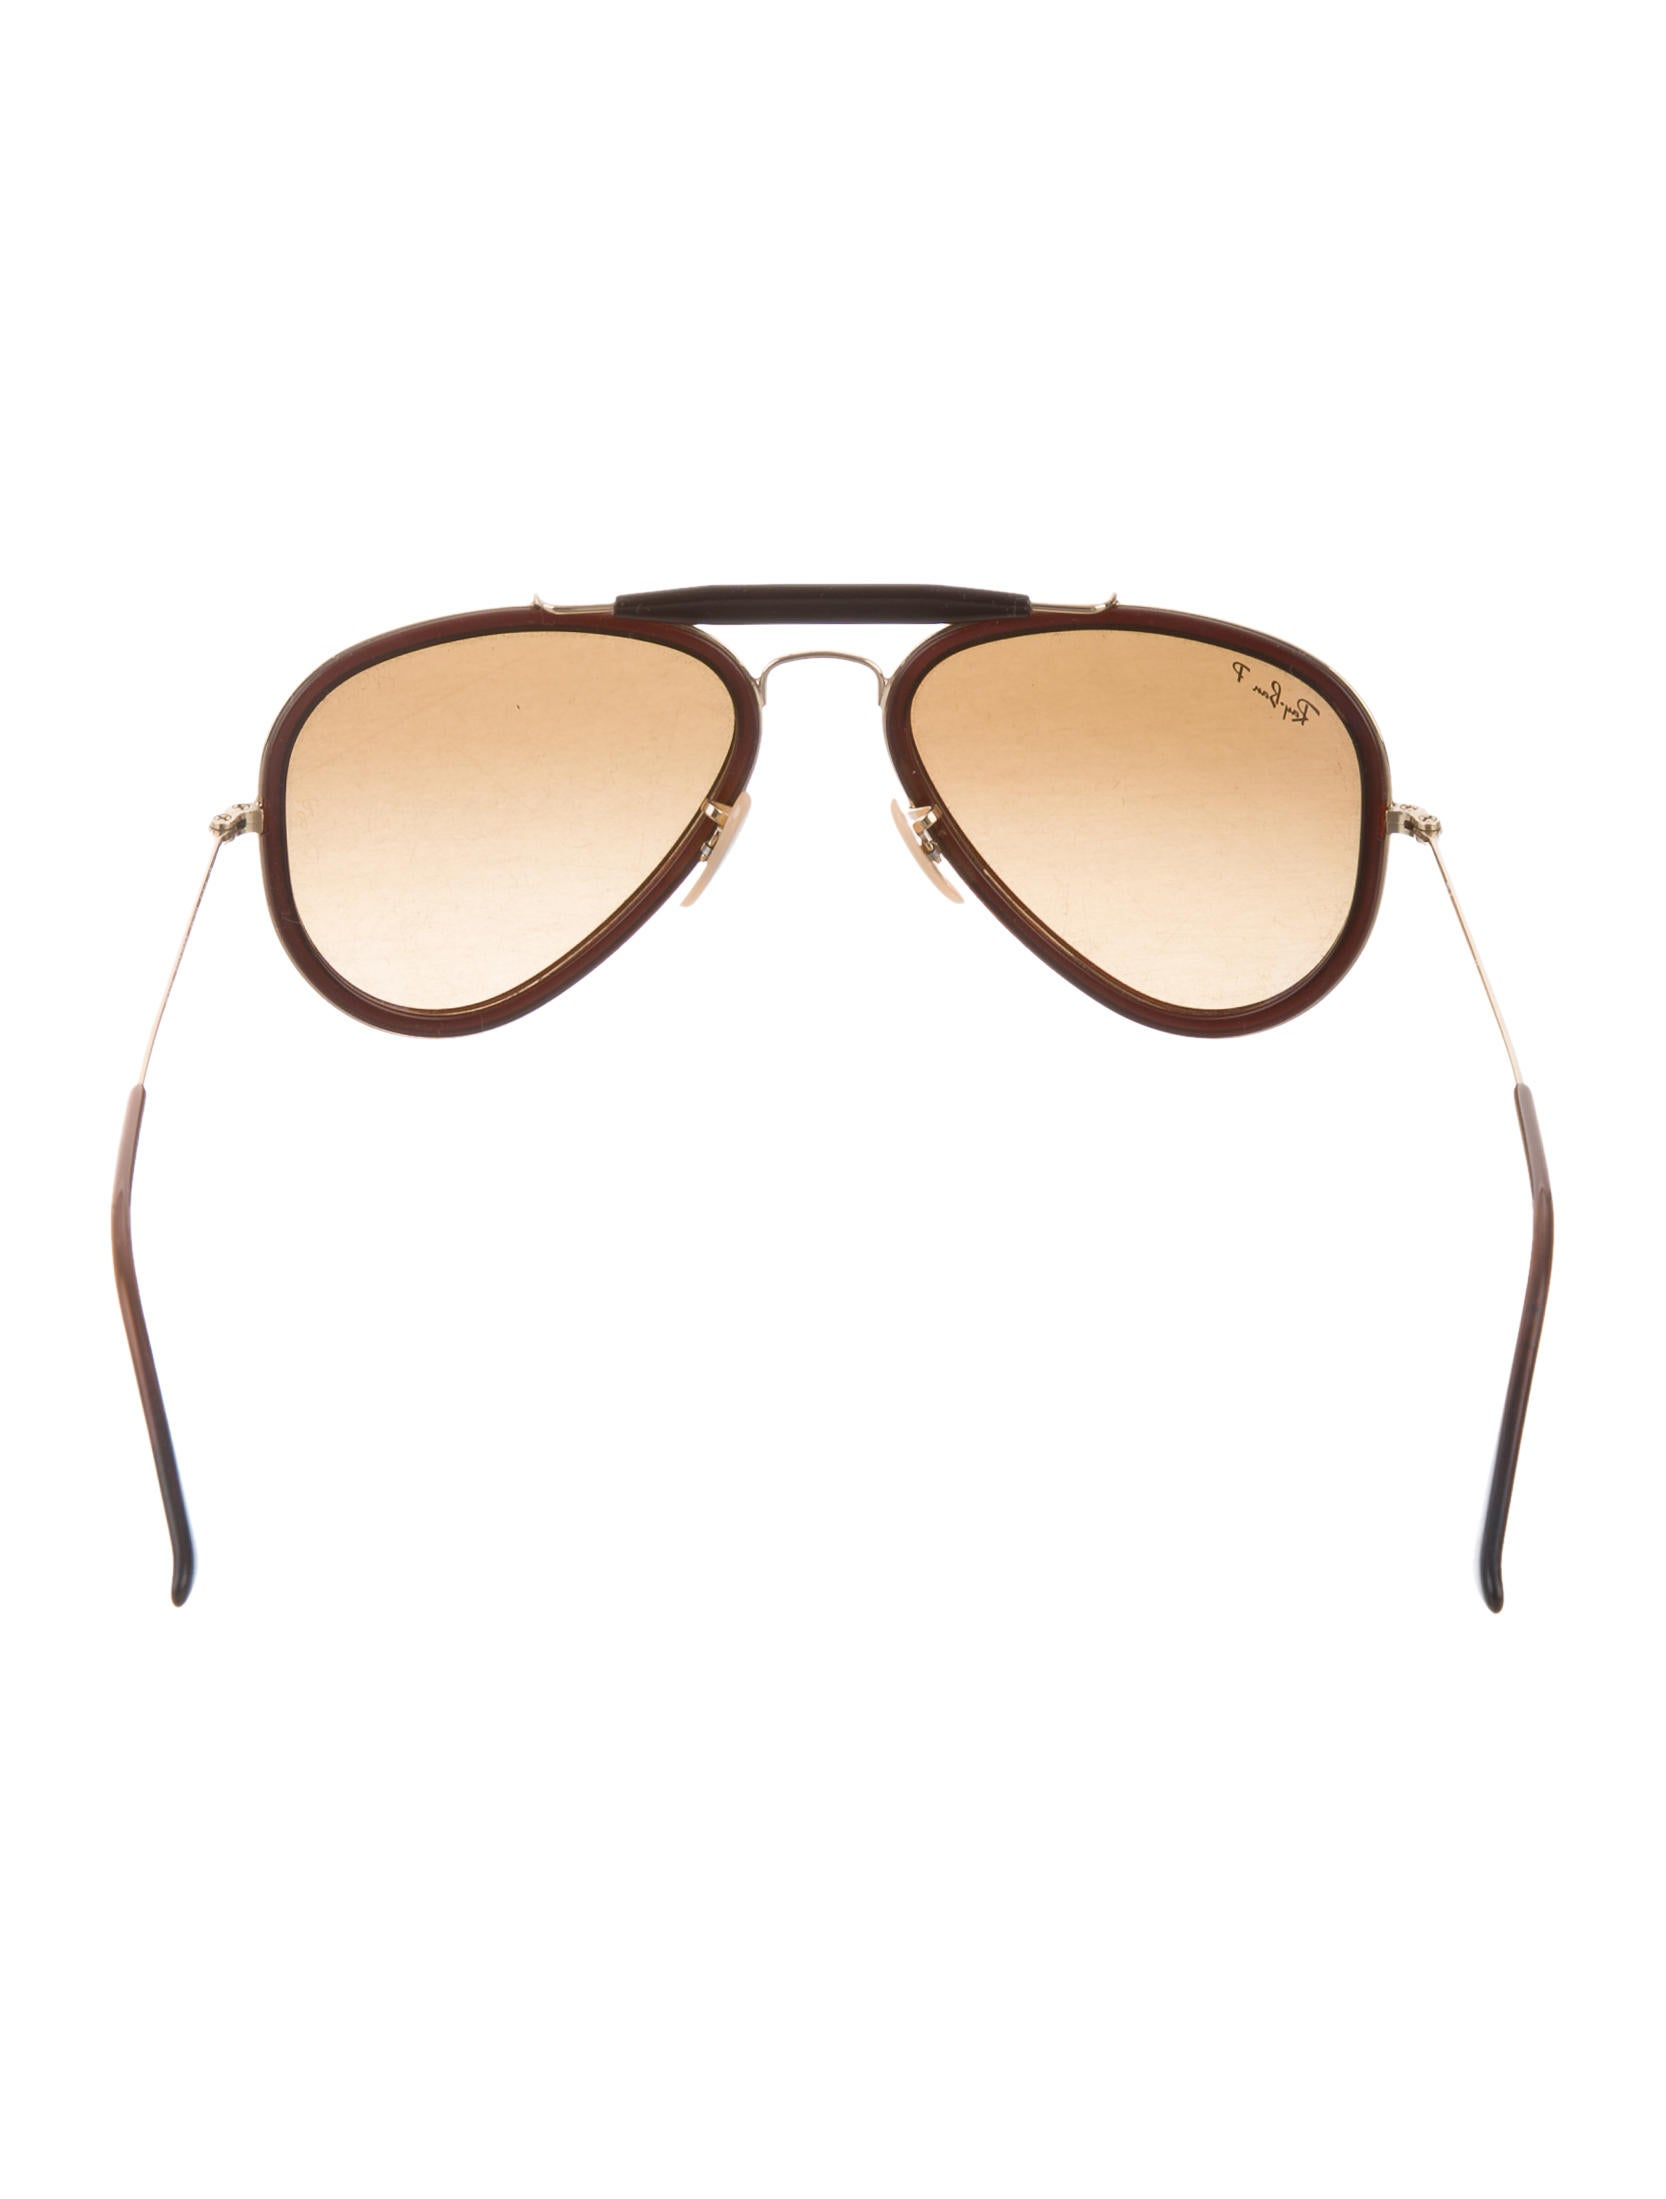 c64c7d203e Ray Ban Aviator Metal Rb 3428 58-17 - Bitterroot Public Library